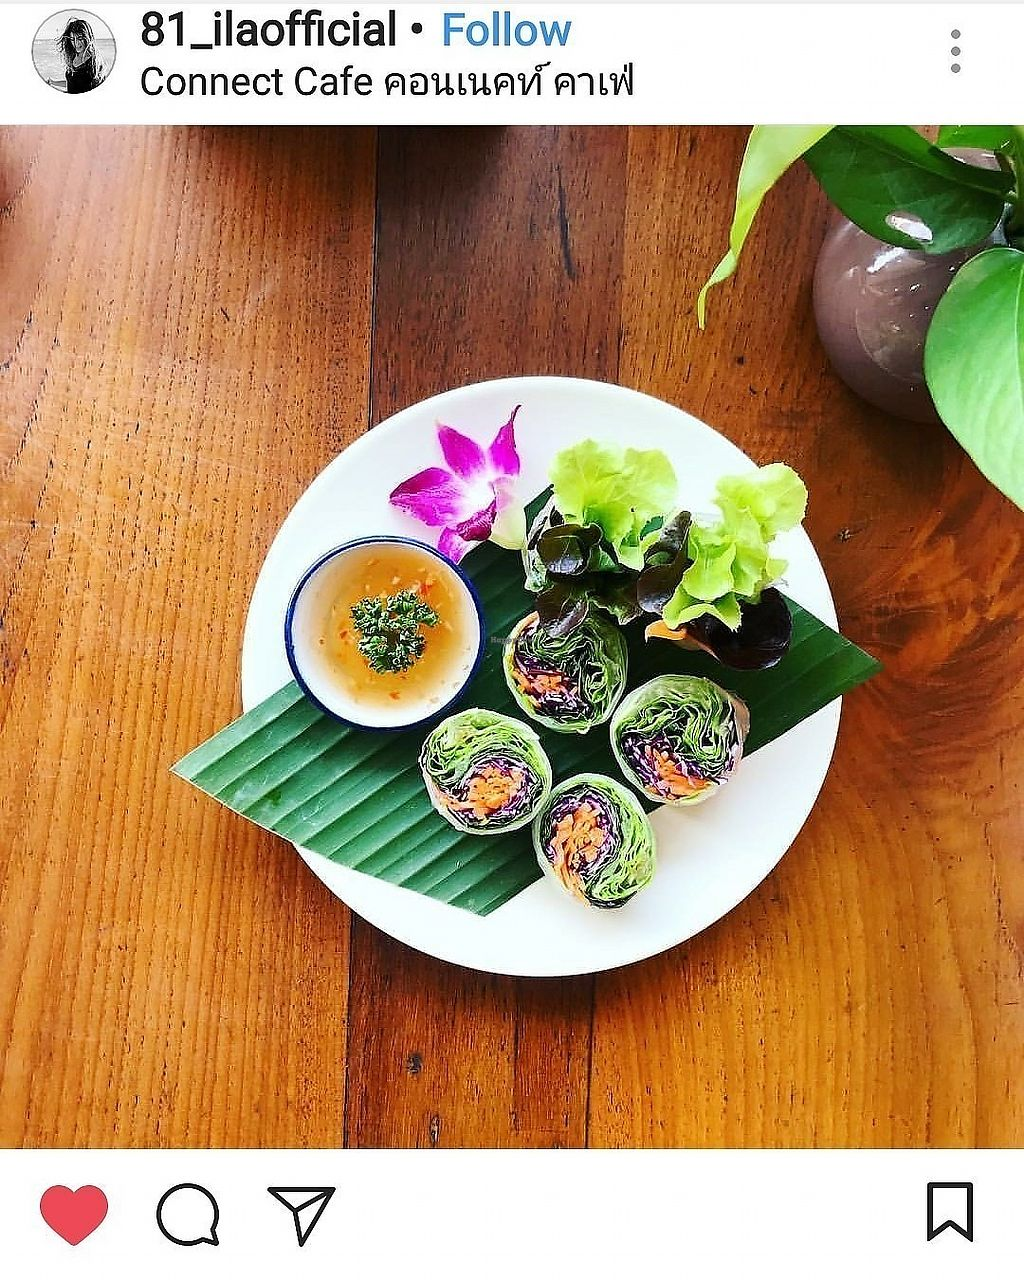 """Photo of Connect Cafe  by <a href=""""/members/profile/connectcafe"""">connectcafe</a> <br/>Fresh spring rolls <br/> February 20, 2018  - <a href='/contact/abuse/image/111723/361549'>Report</a>"""